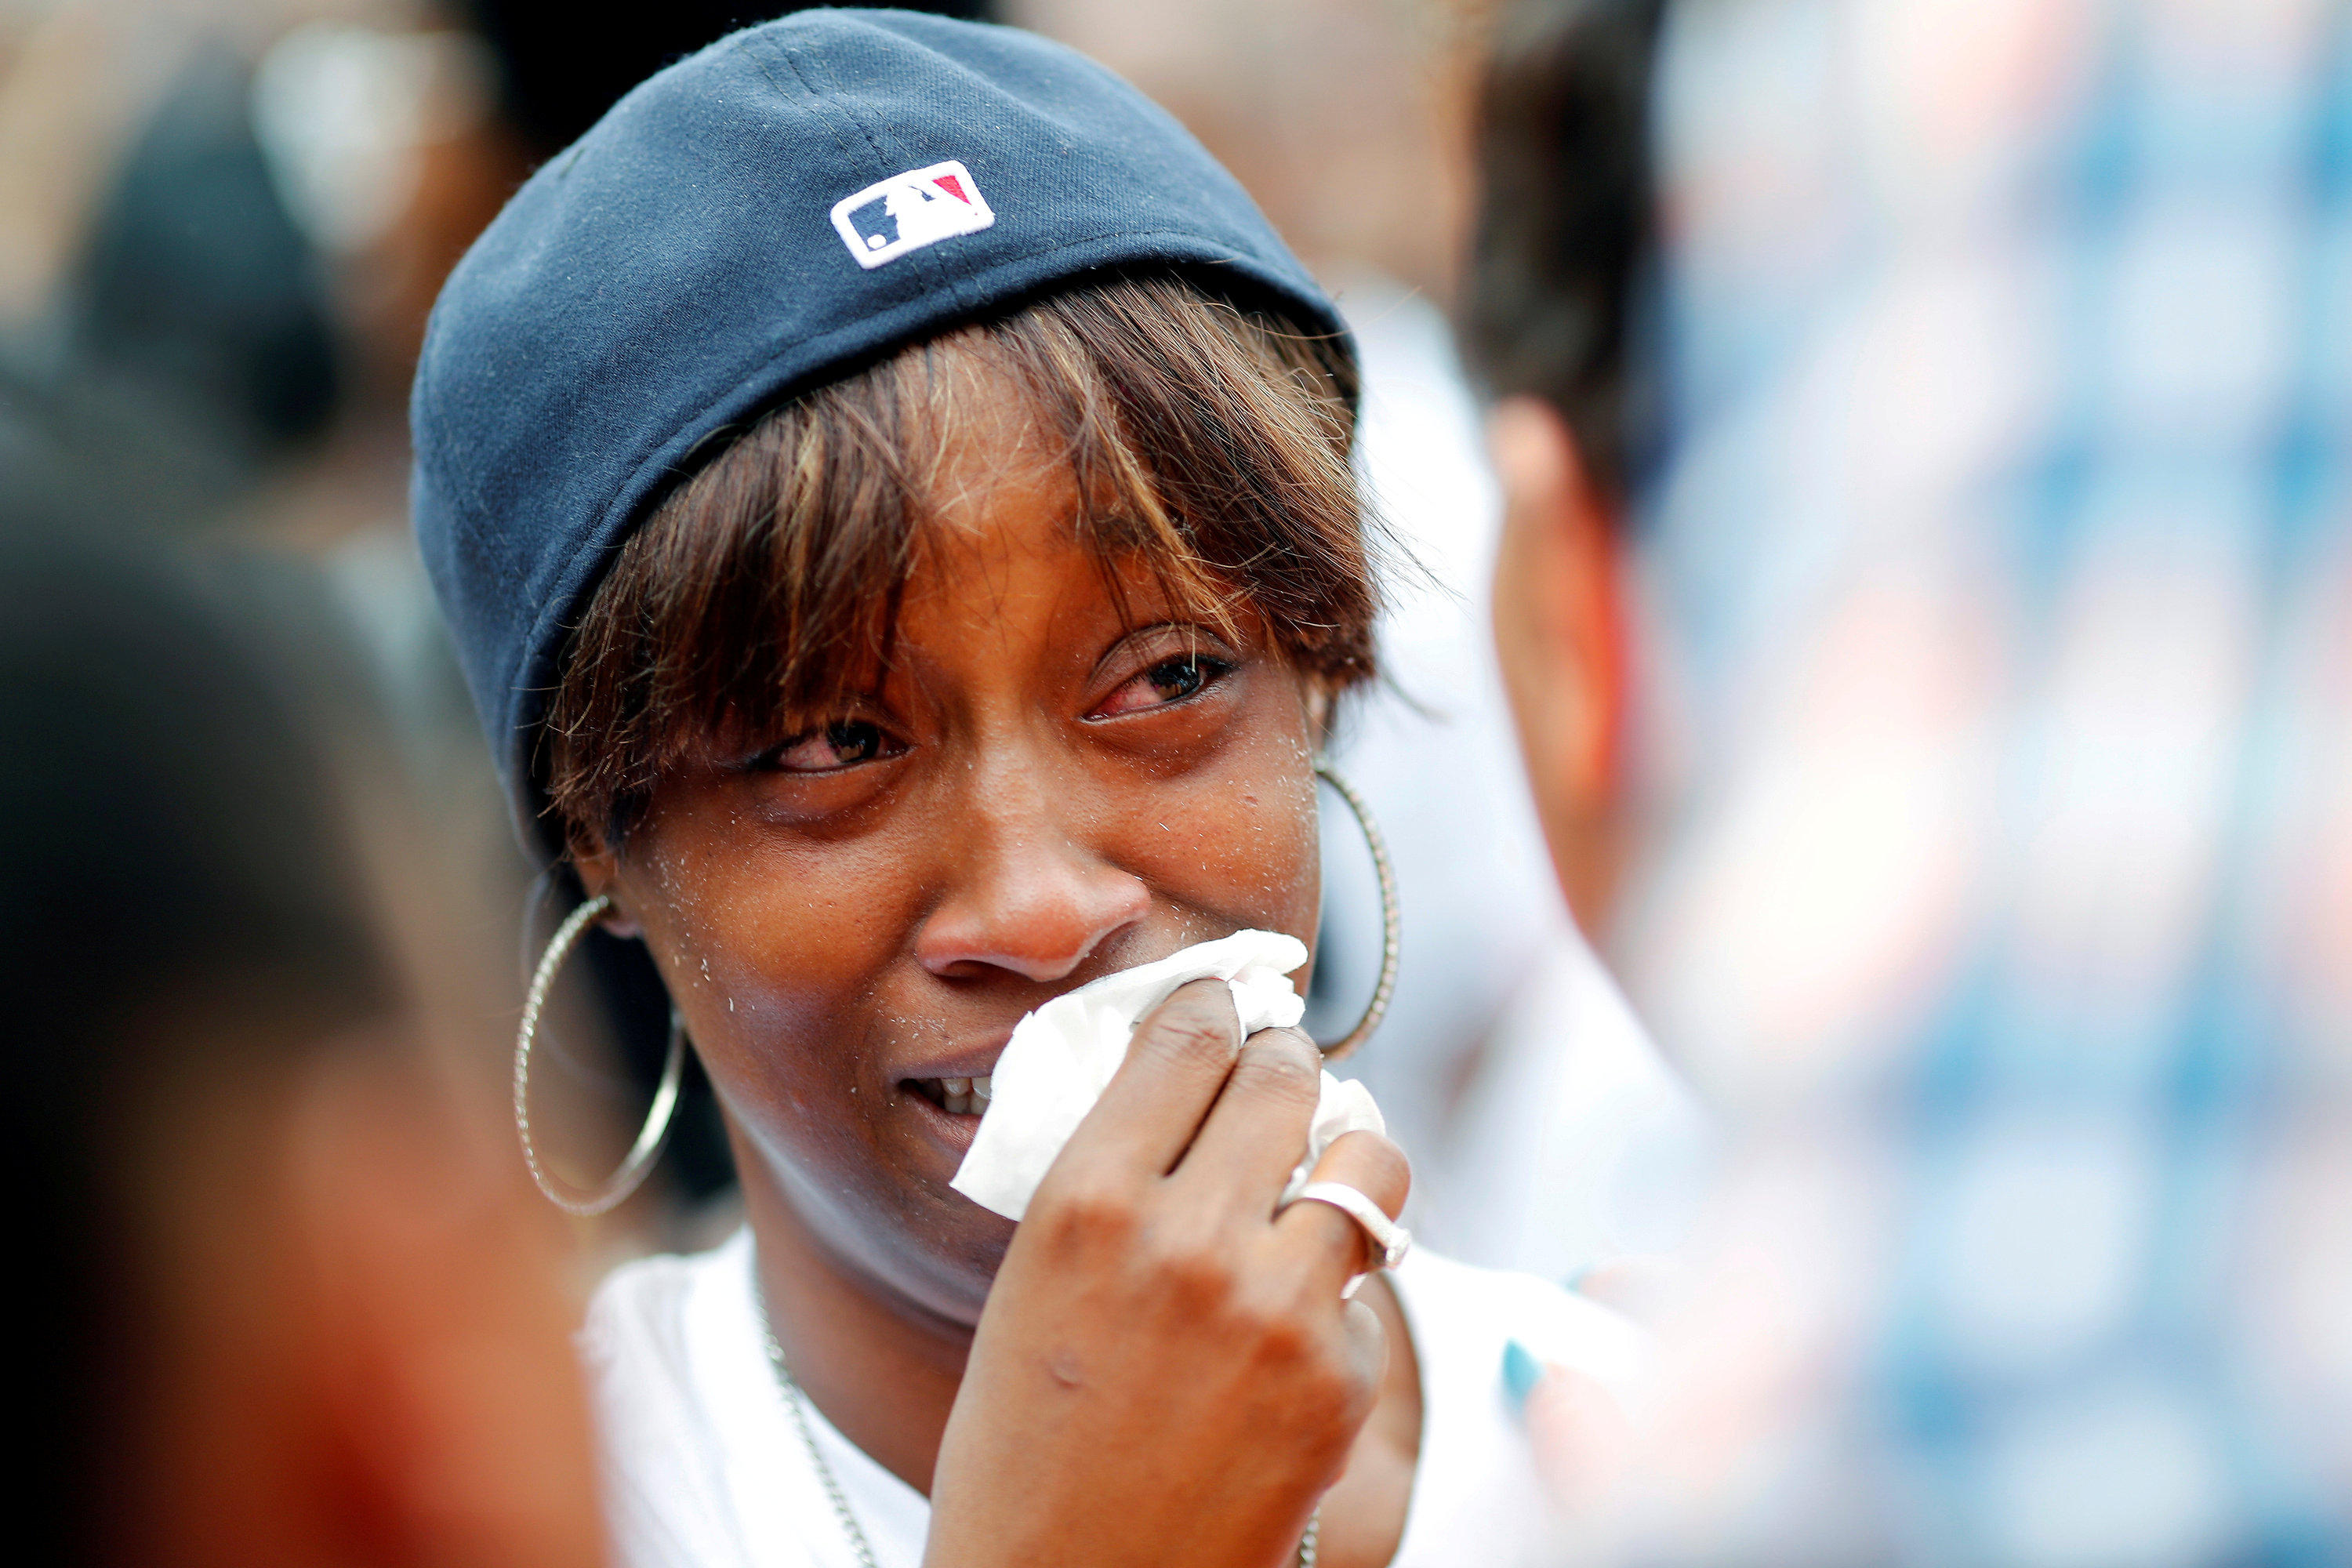 Girlfriend of Philando Castile says fear led her to livestream